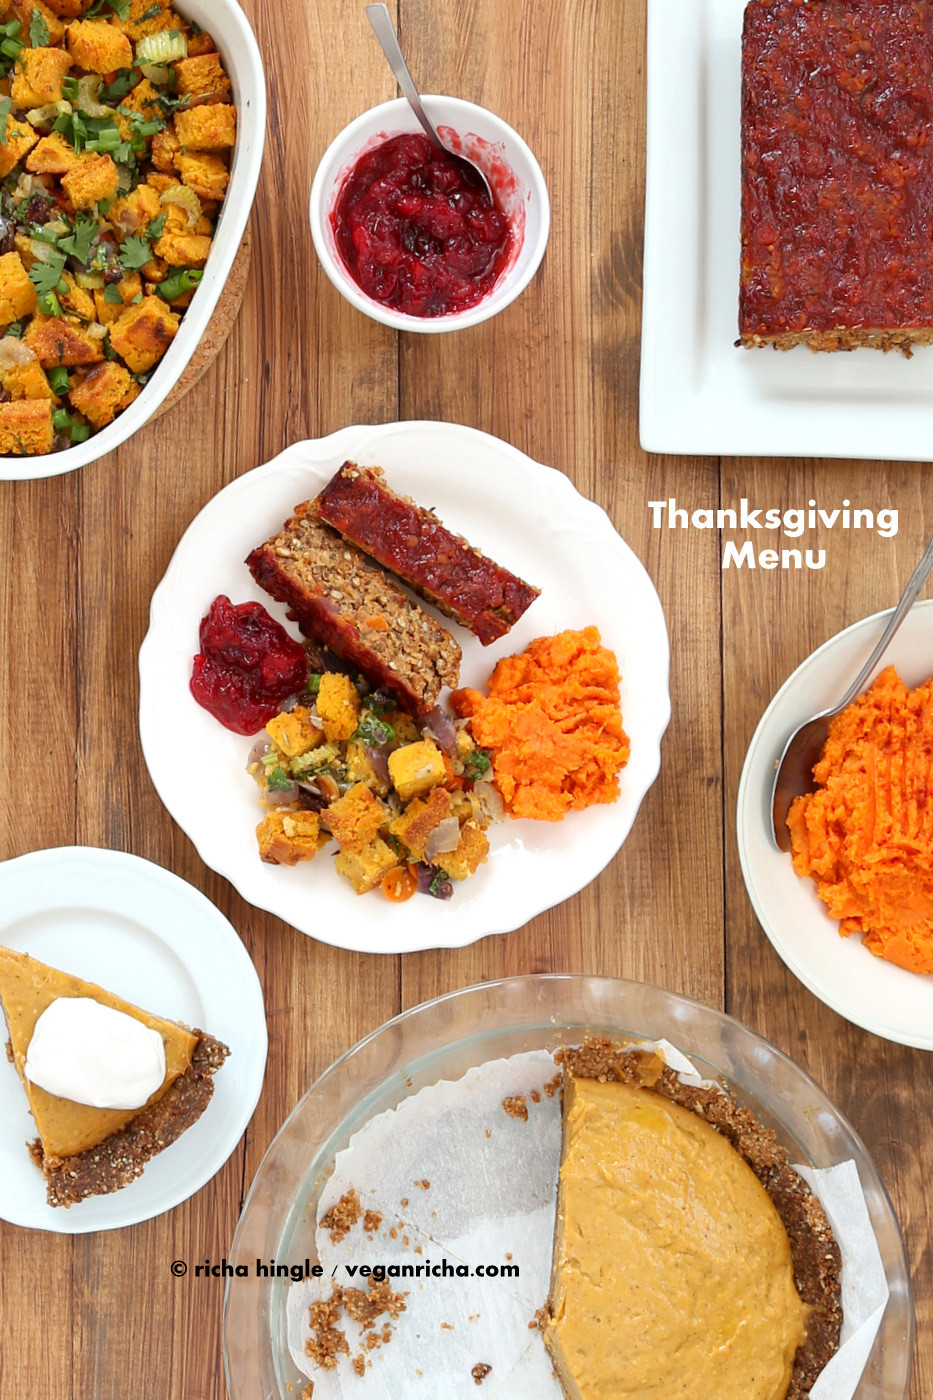 Thanksgiving Vegan Recipes  80 Vegan Thanksgiving Recipes 2014 Vegan Richa